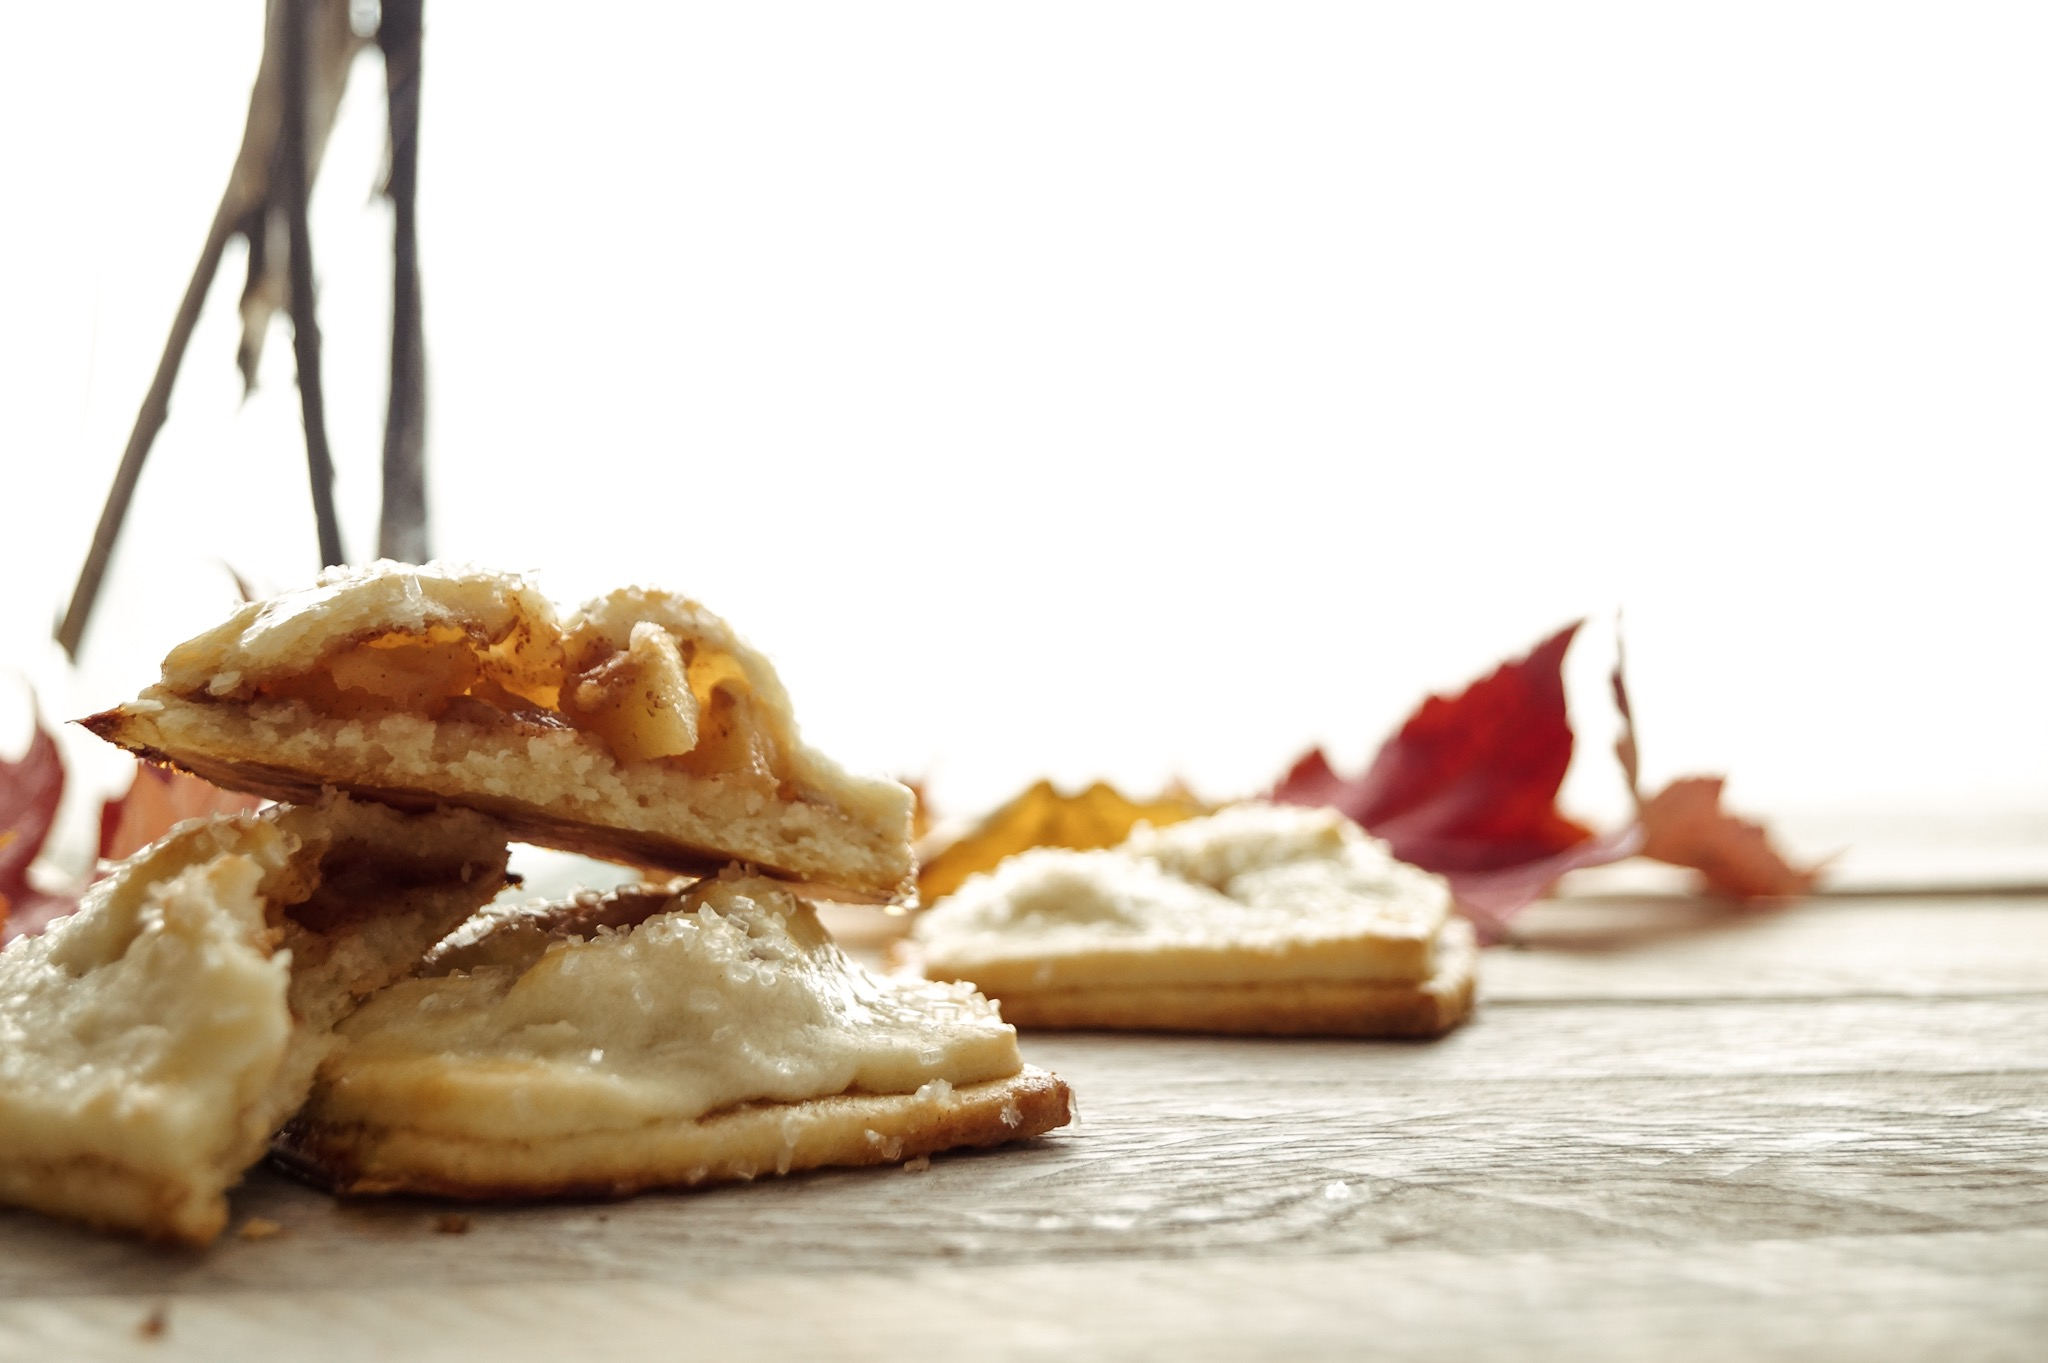 Mini apple pies for slow fall mornings by Mandy Tetrault: A messy Bun Kitchen, Apple pie recipes, apple pie filling, desserts for a crowd, thanksgiving desserts, easy apple pie recipe,  flaky pie crust, homemade pie crust, homemade apple pie, desserts for fall, dessert for a crowd, easy dessert recipes, fall dessert recipes,